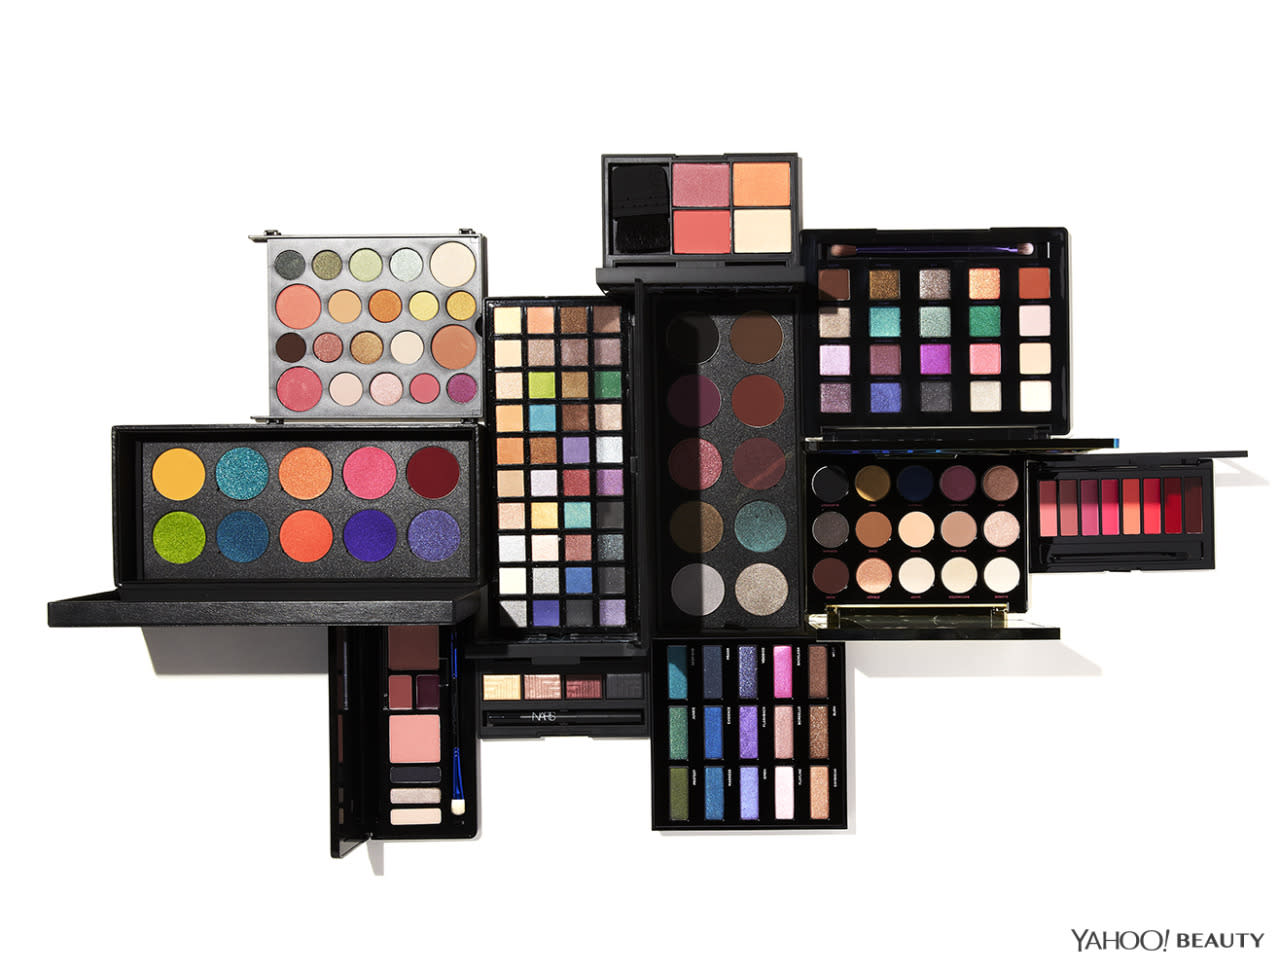 Holiday Gift Guide: The 15 Best Beauty Palettes